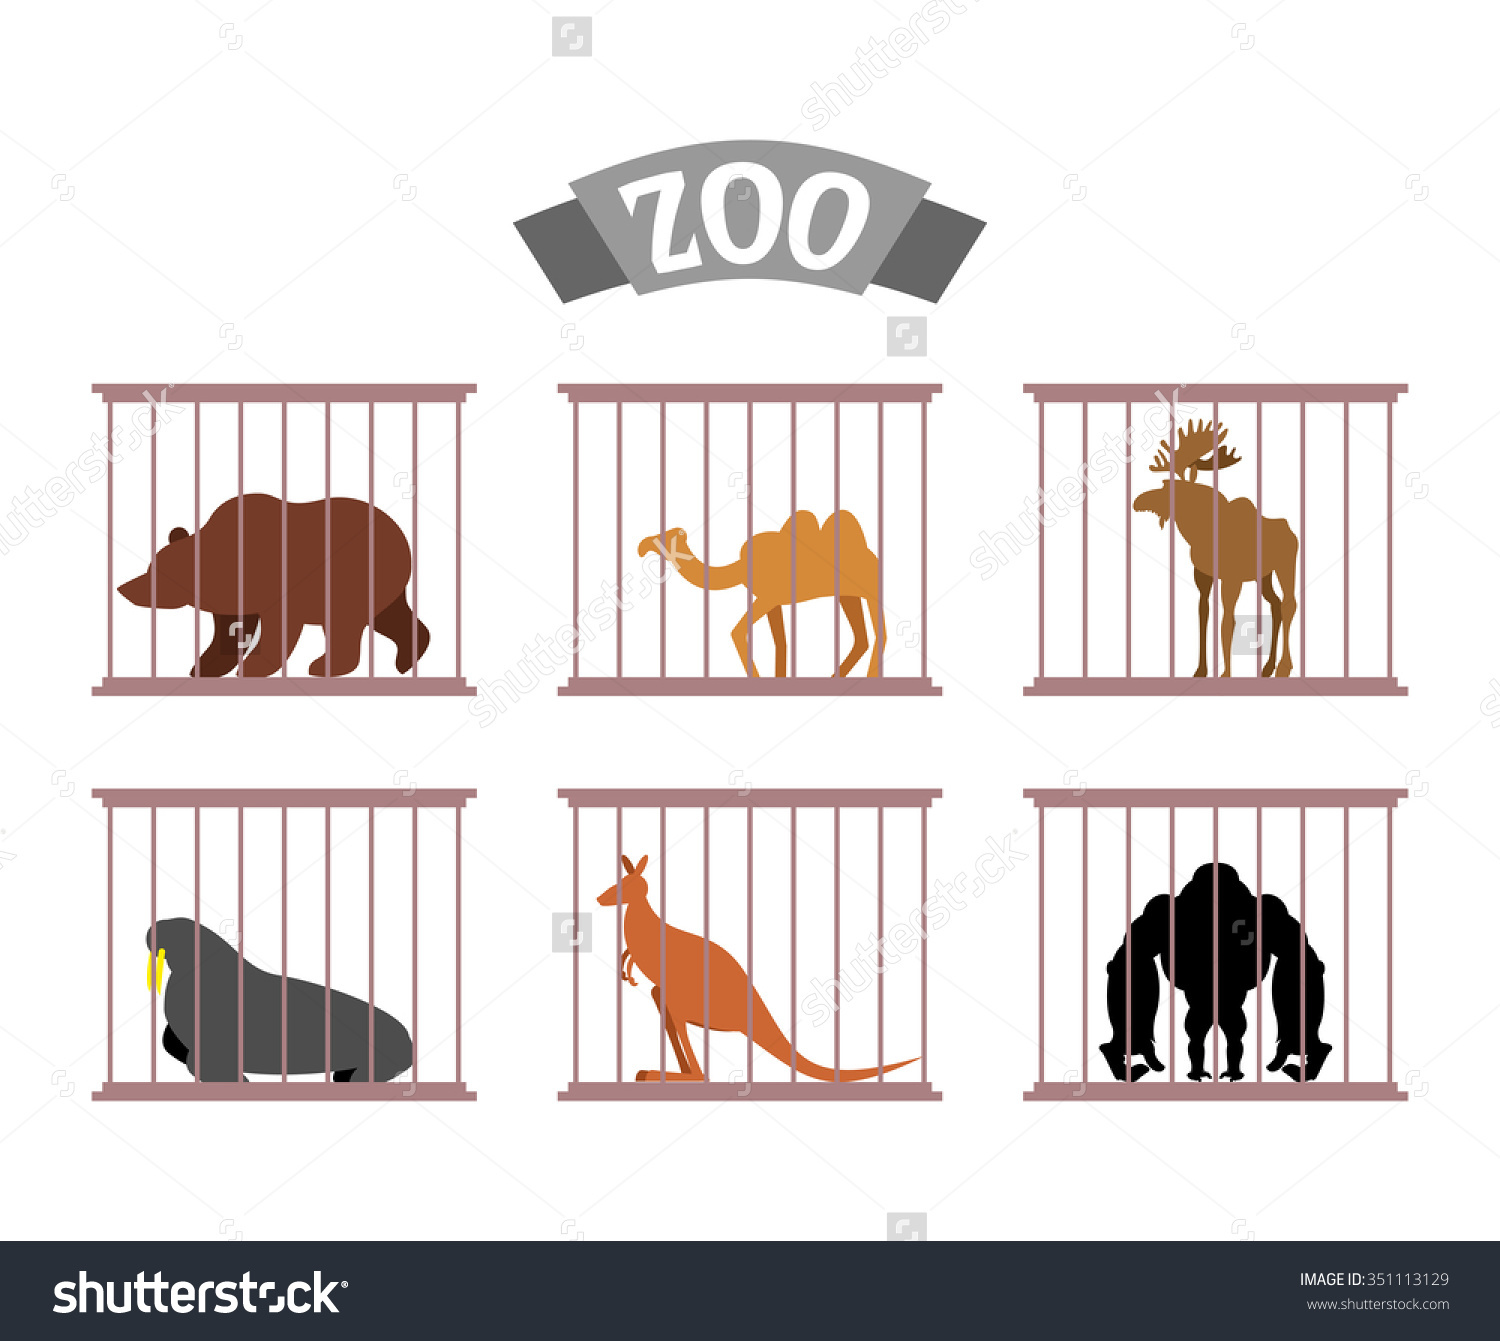 Zoo collection wild animals. Animal vs person clipart